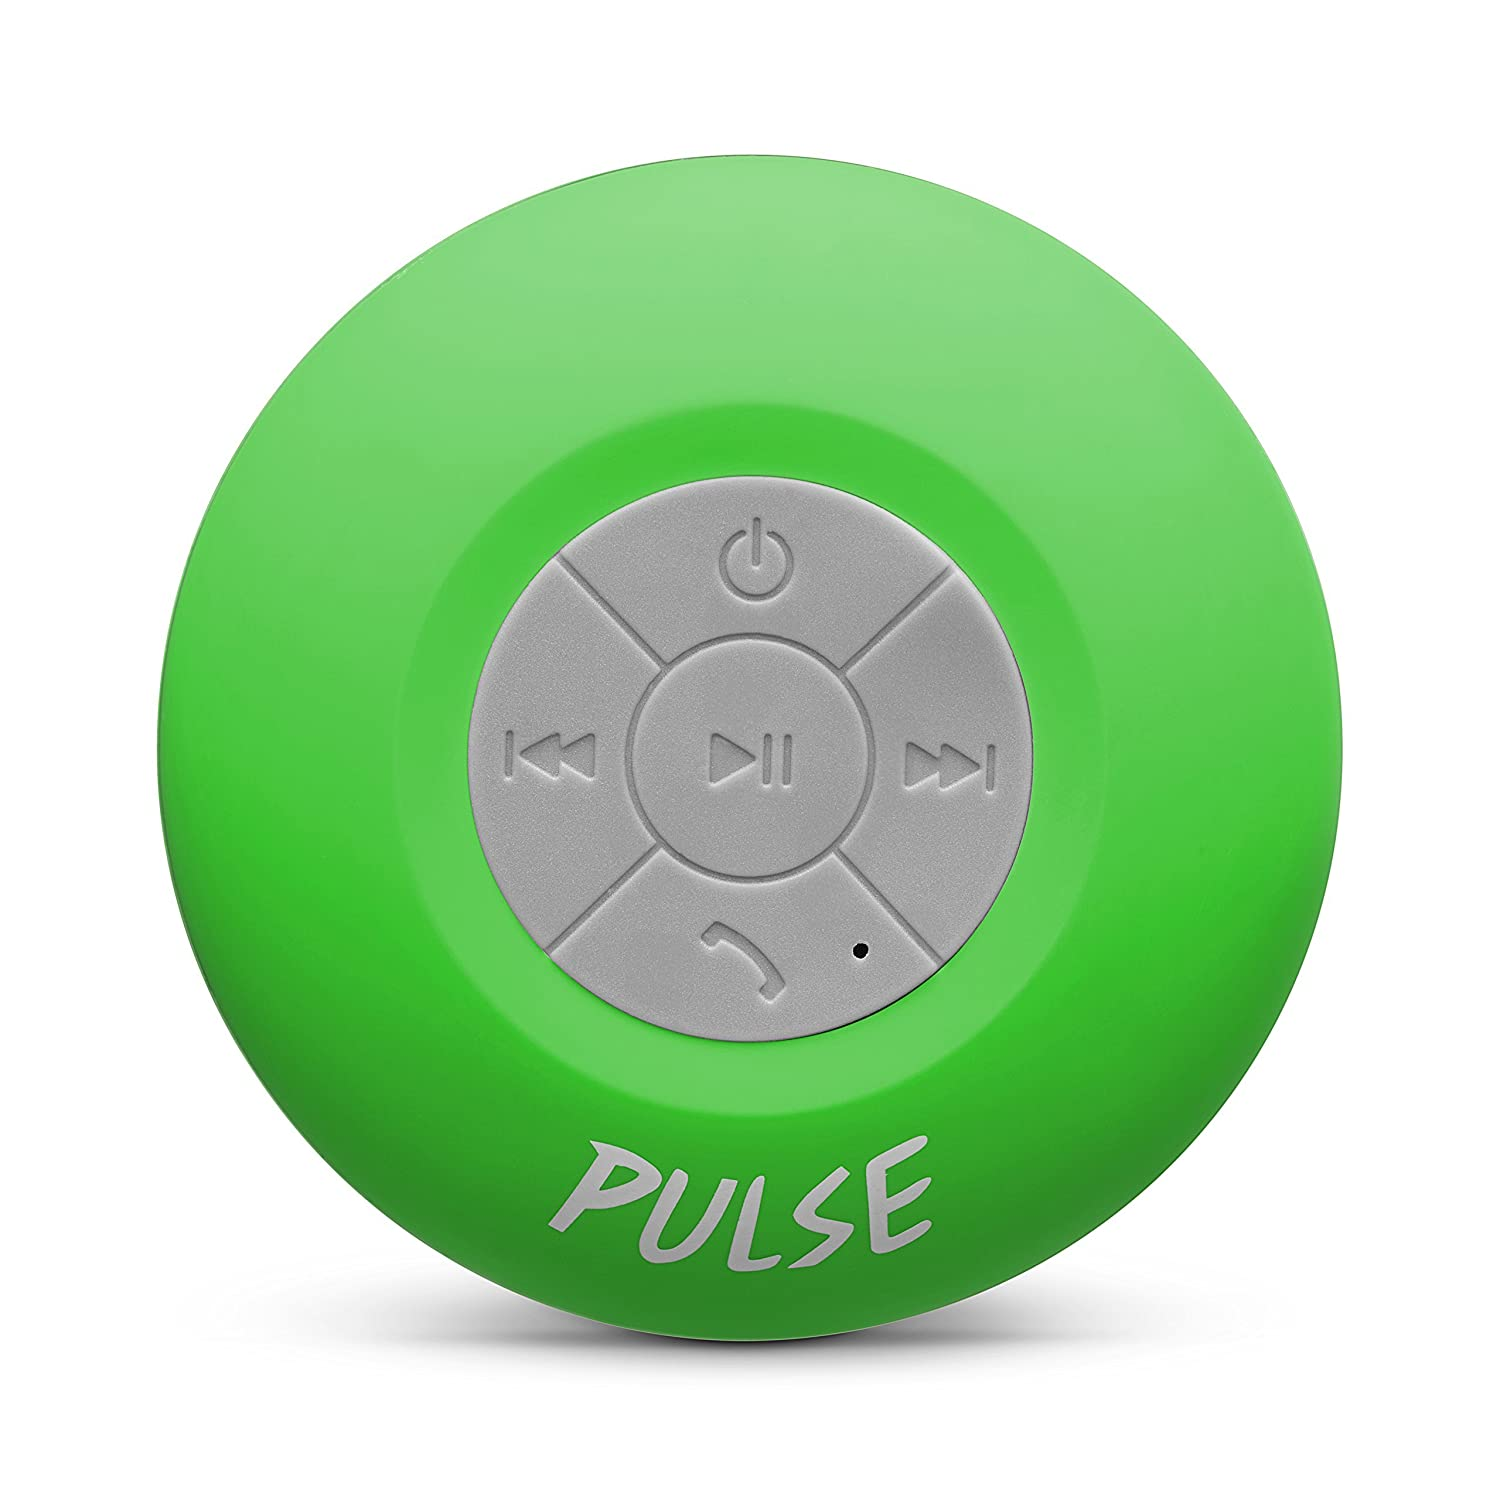 CSJ Pulse Wireless Waterproof Bluetooth 4.0 Shower Speaker - Green